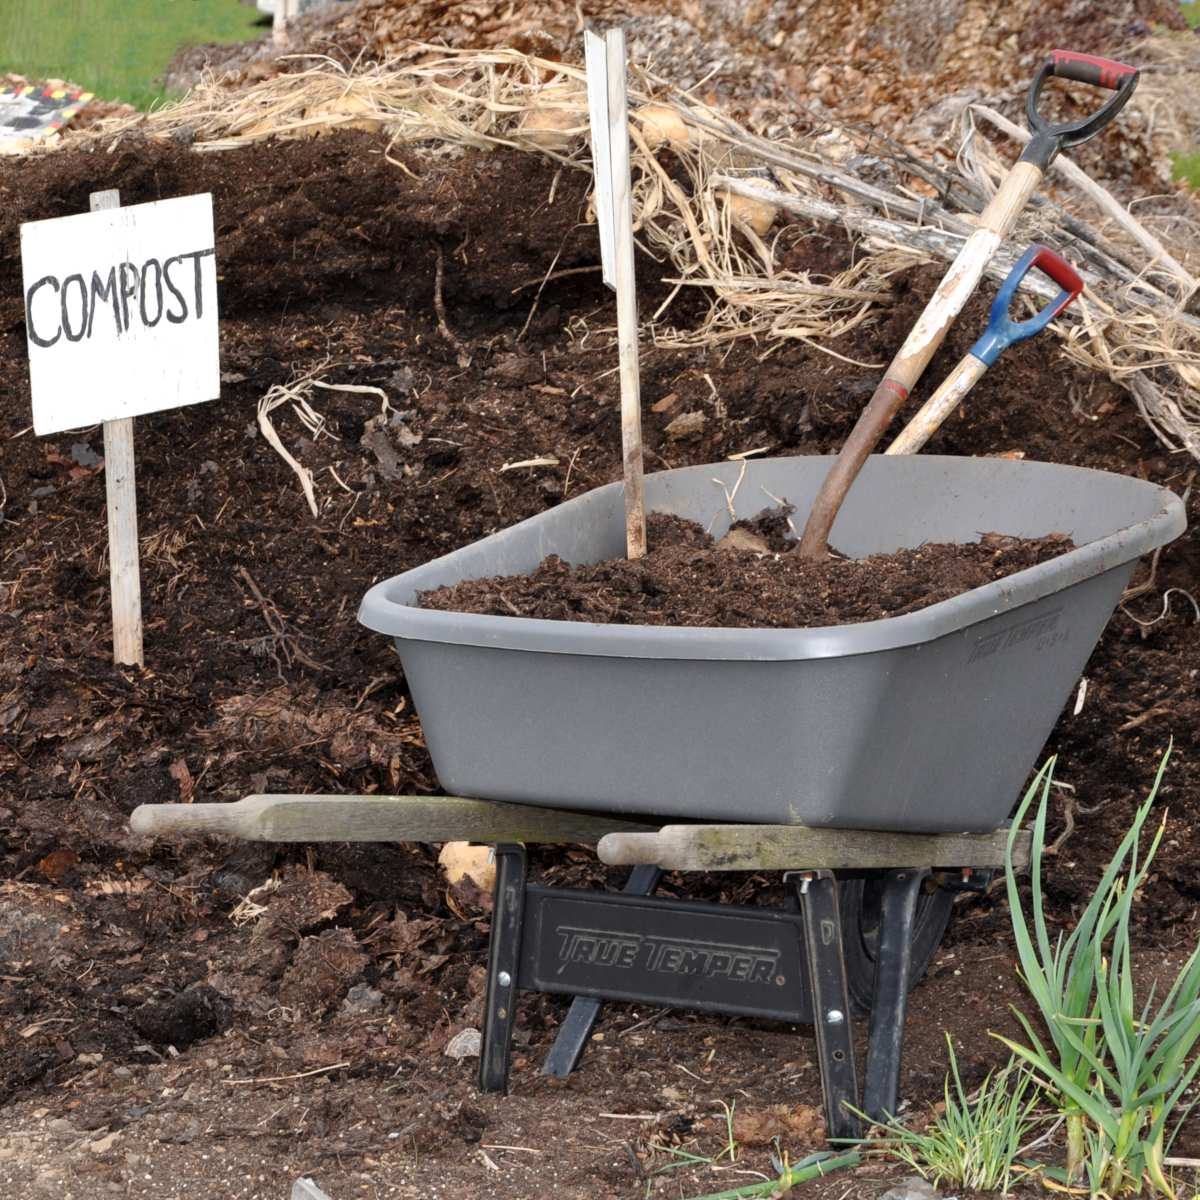 What is compost exactly? Uses and purpose